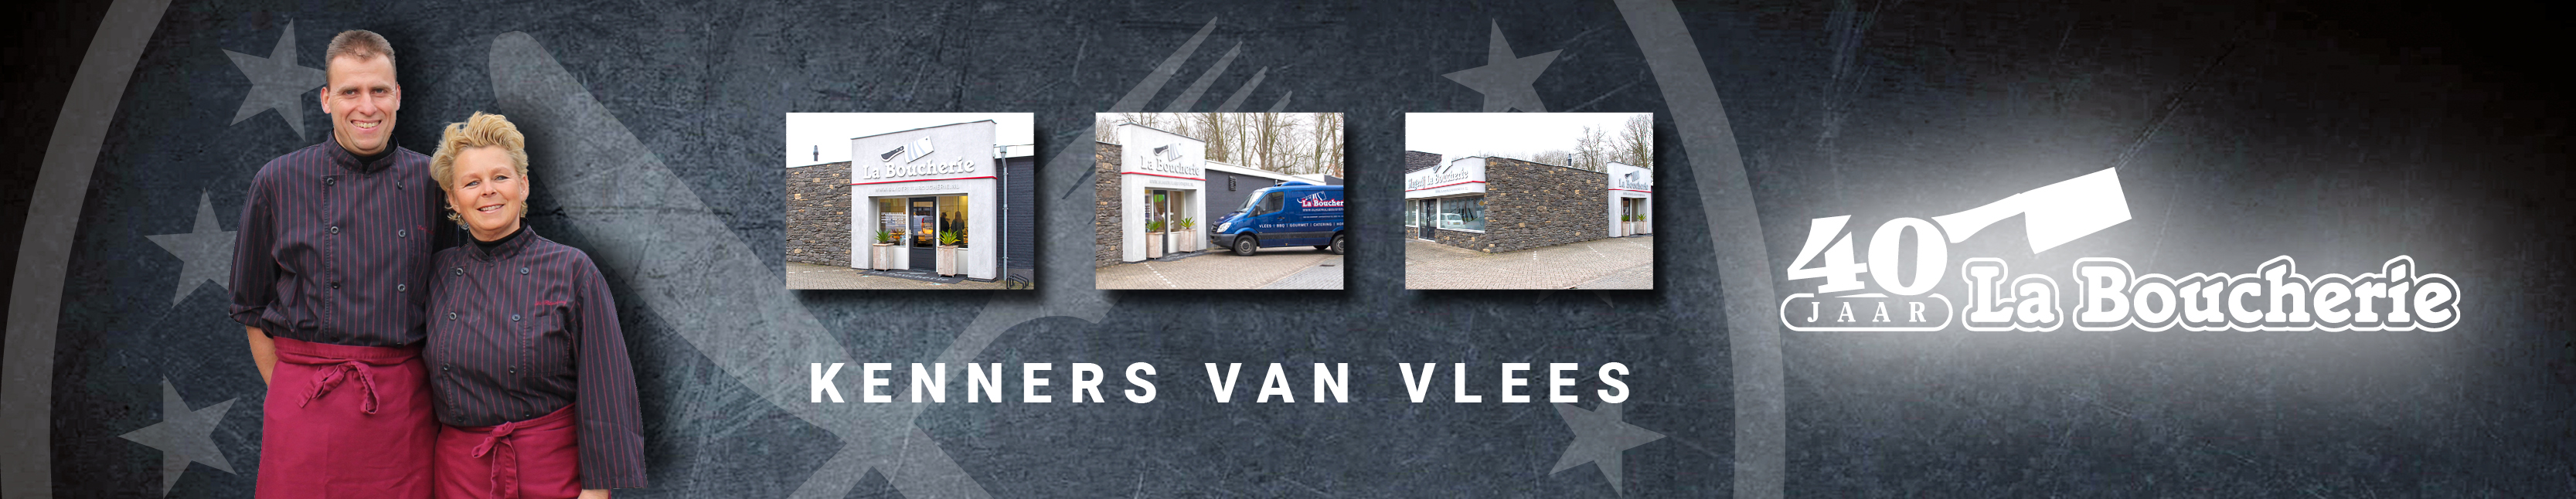 laboucherie